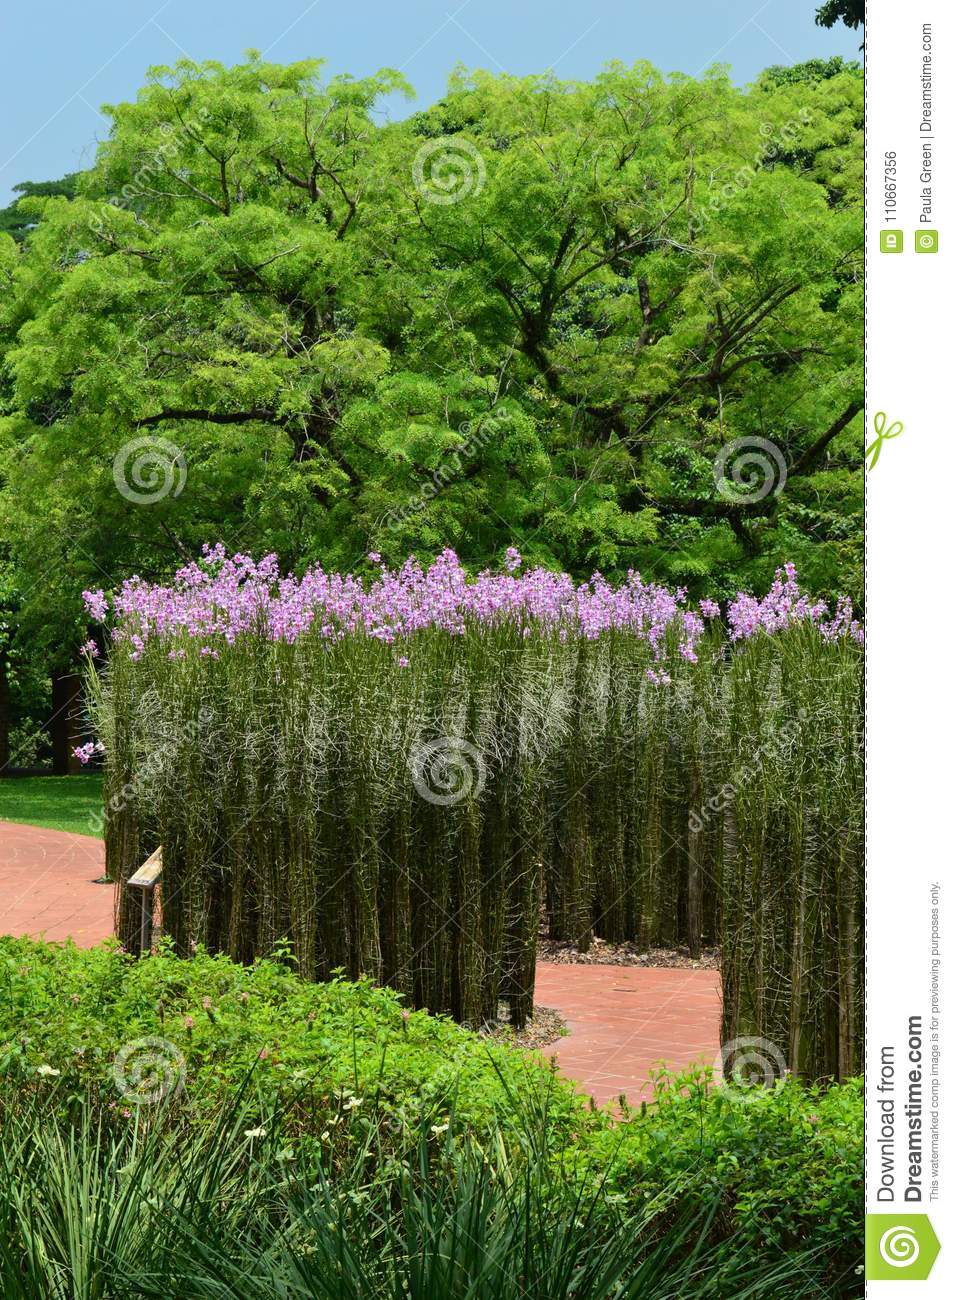 Tall Straight Plants With Purple Flowers At Singapore Botanical